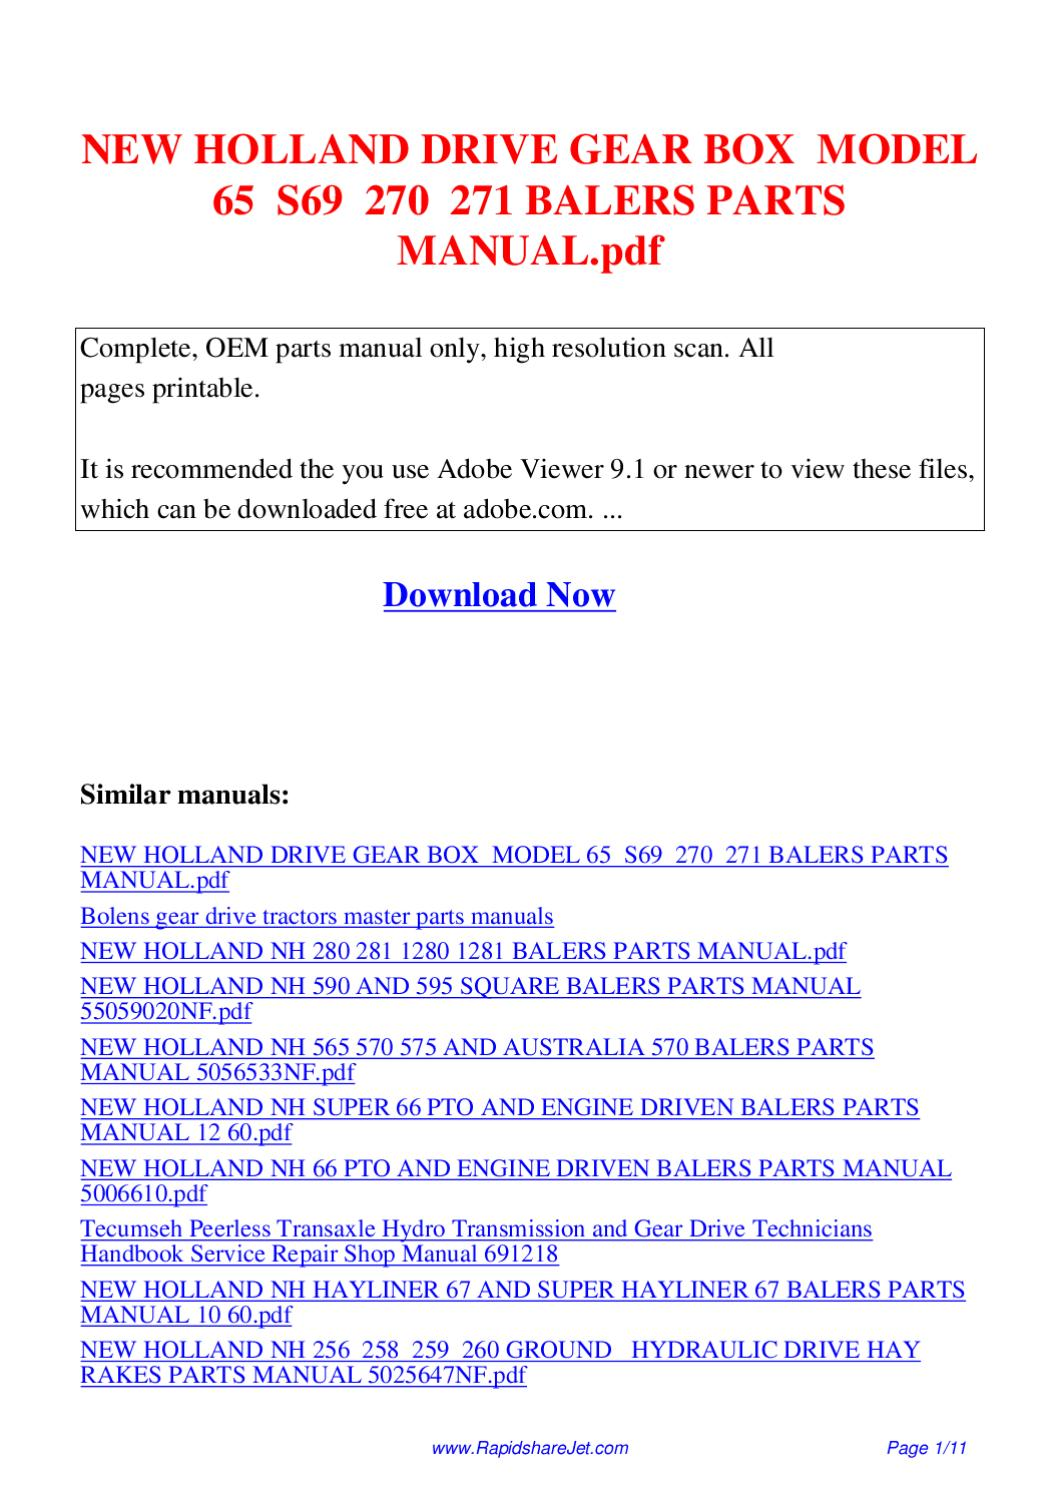 Denon dvm 2845ci service manual download ebook array 2002 mercury outboard 250 optimax jet drive manual new ebook rh 2002 mercury outboard fandeluxe Images